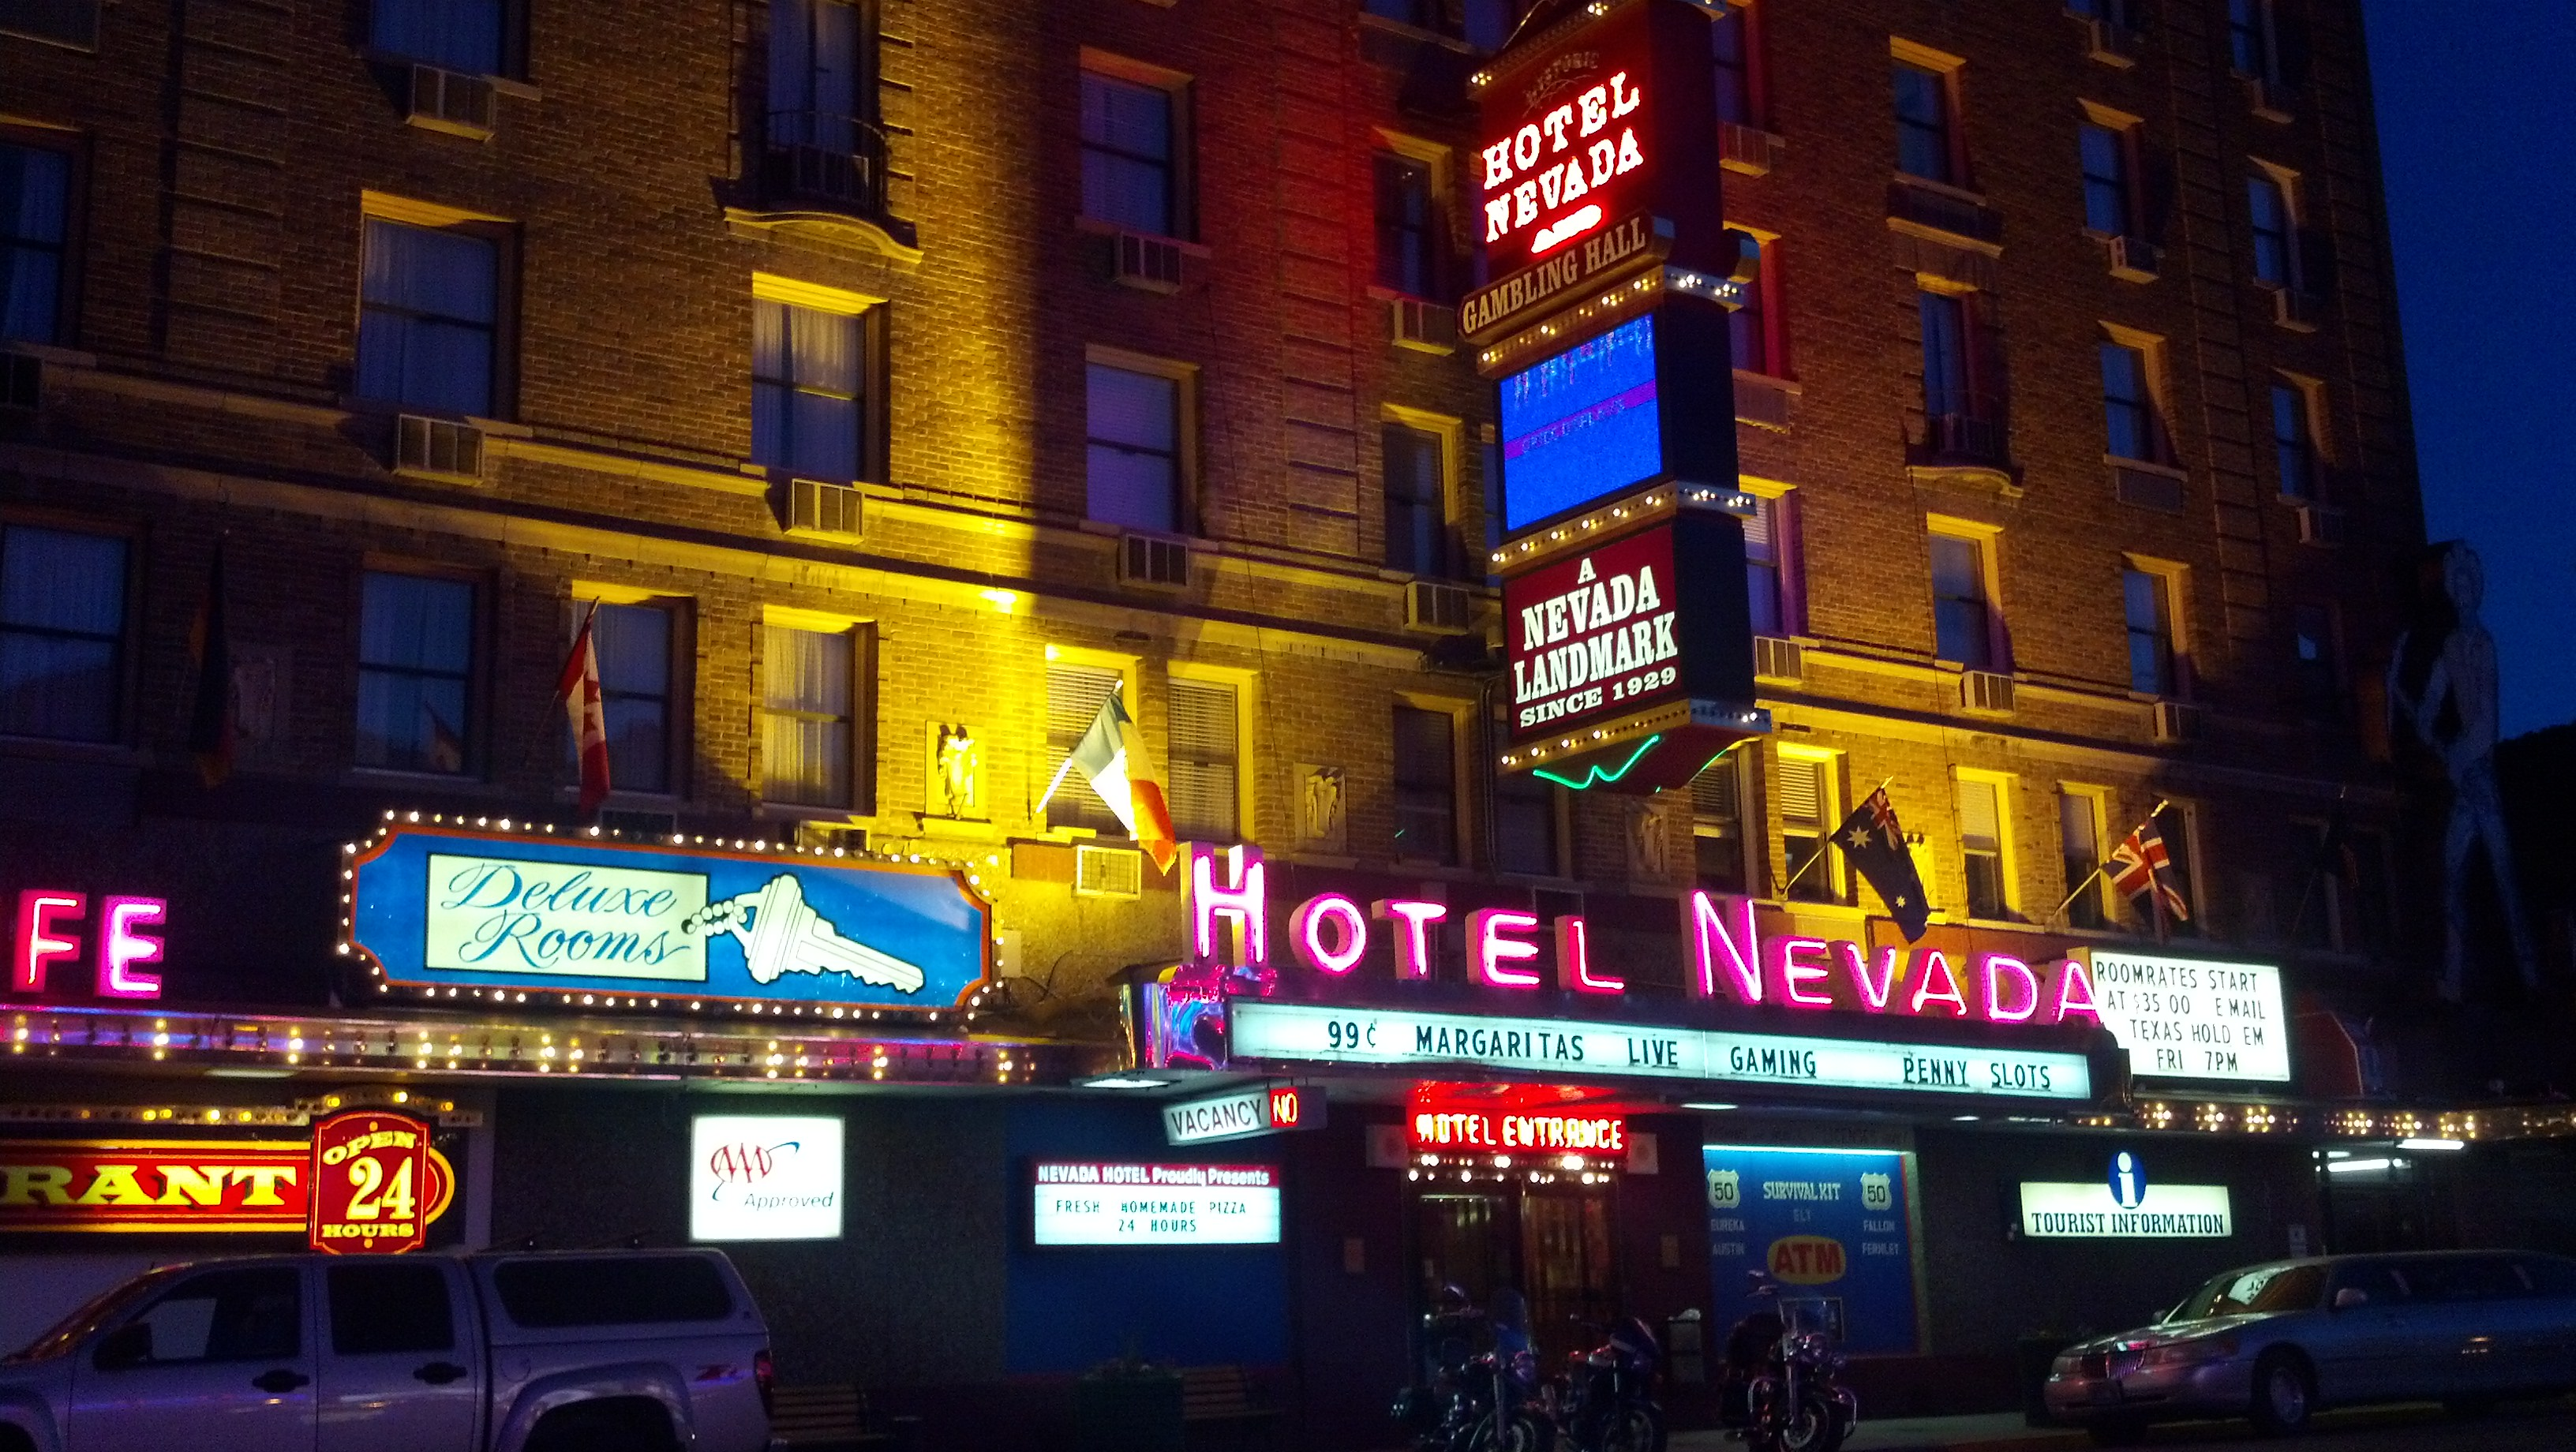 The Hotel Nevada Is Flashiest Place In Ely Nev Photo By Michael